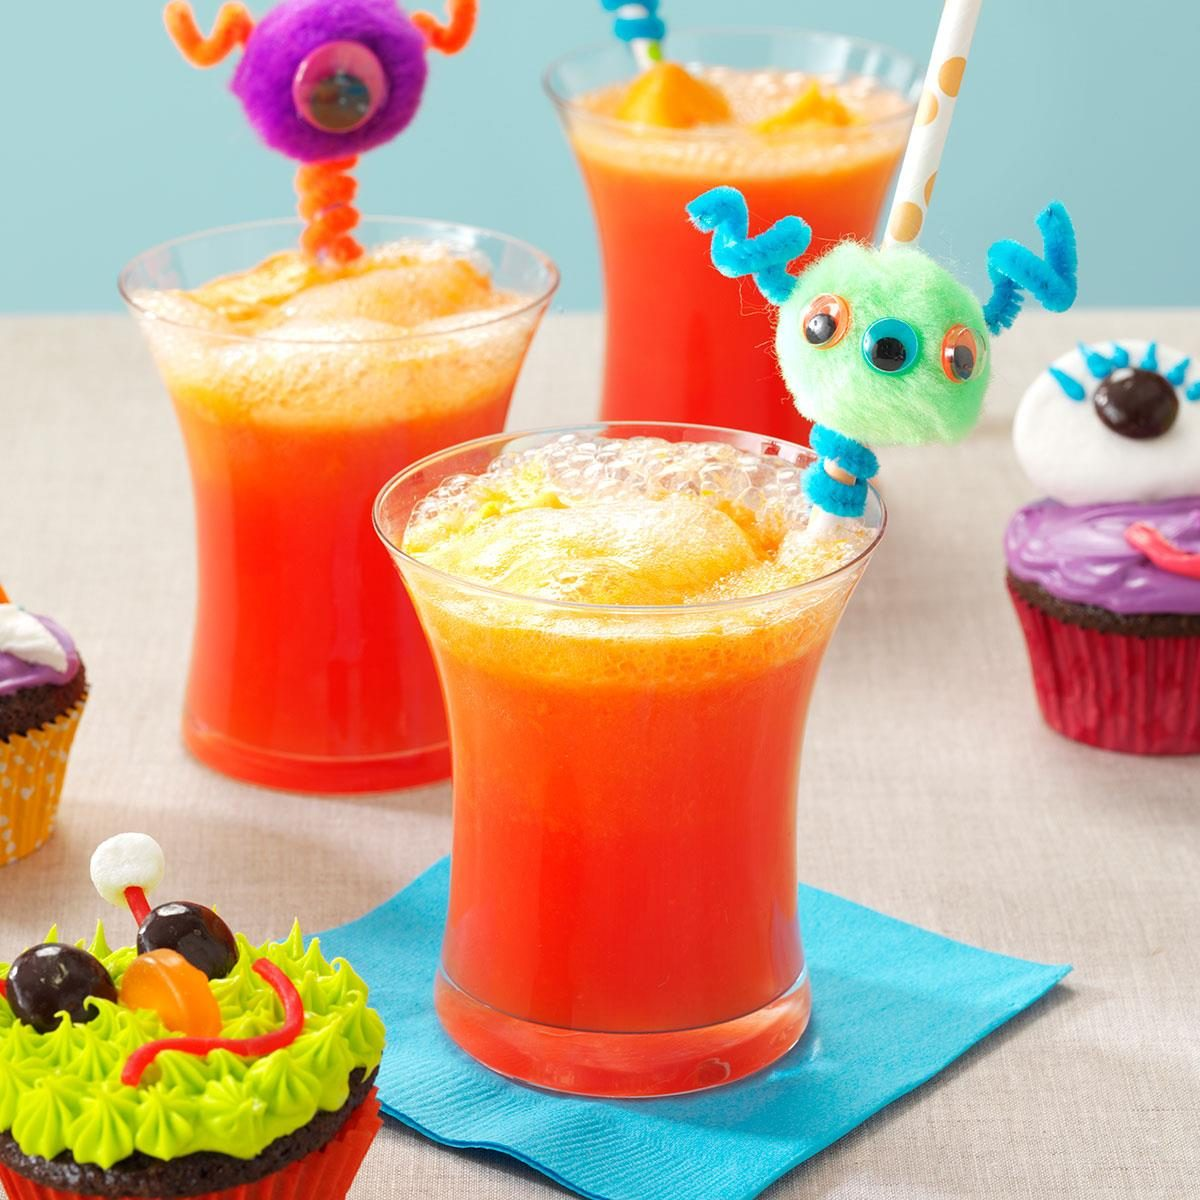 orange sherbet party punch recipe taste of home - Halloween Party Punch Alcohol